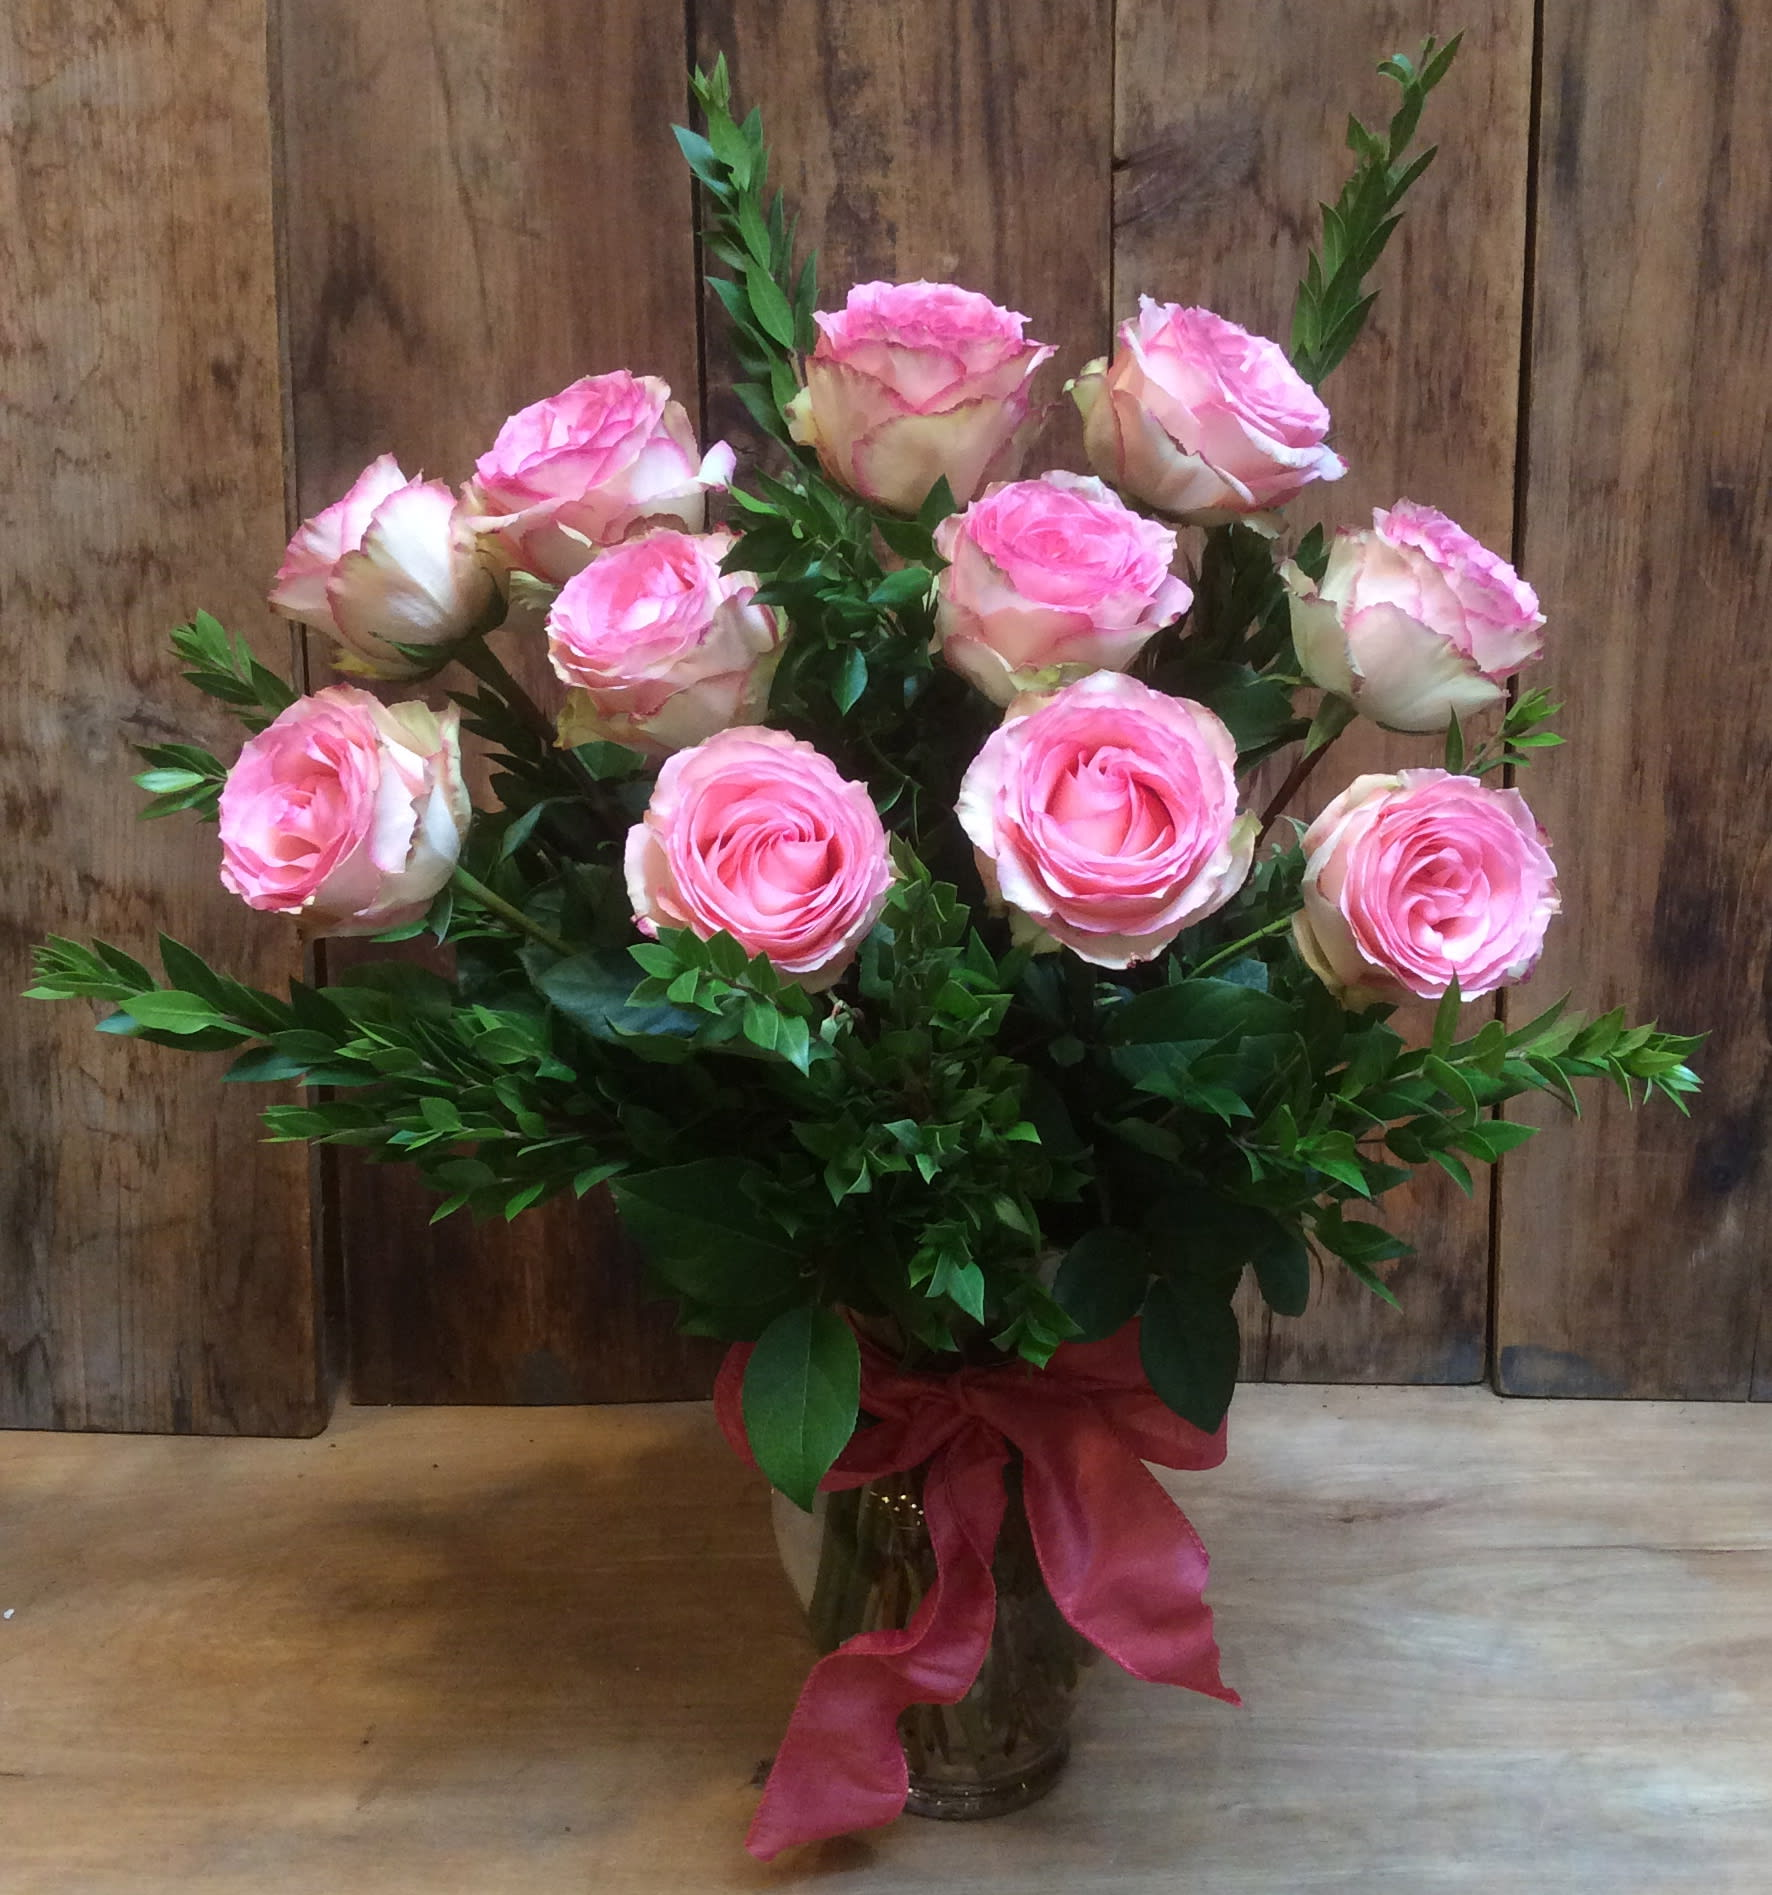 Long stem Esperance cabbage roses - Esperance, the French word for hope, is the